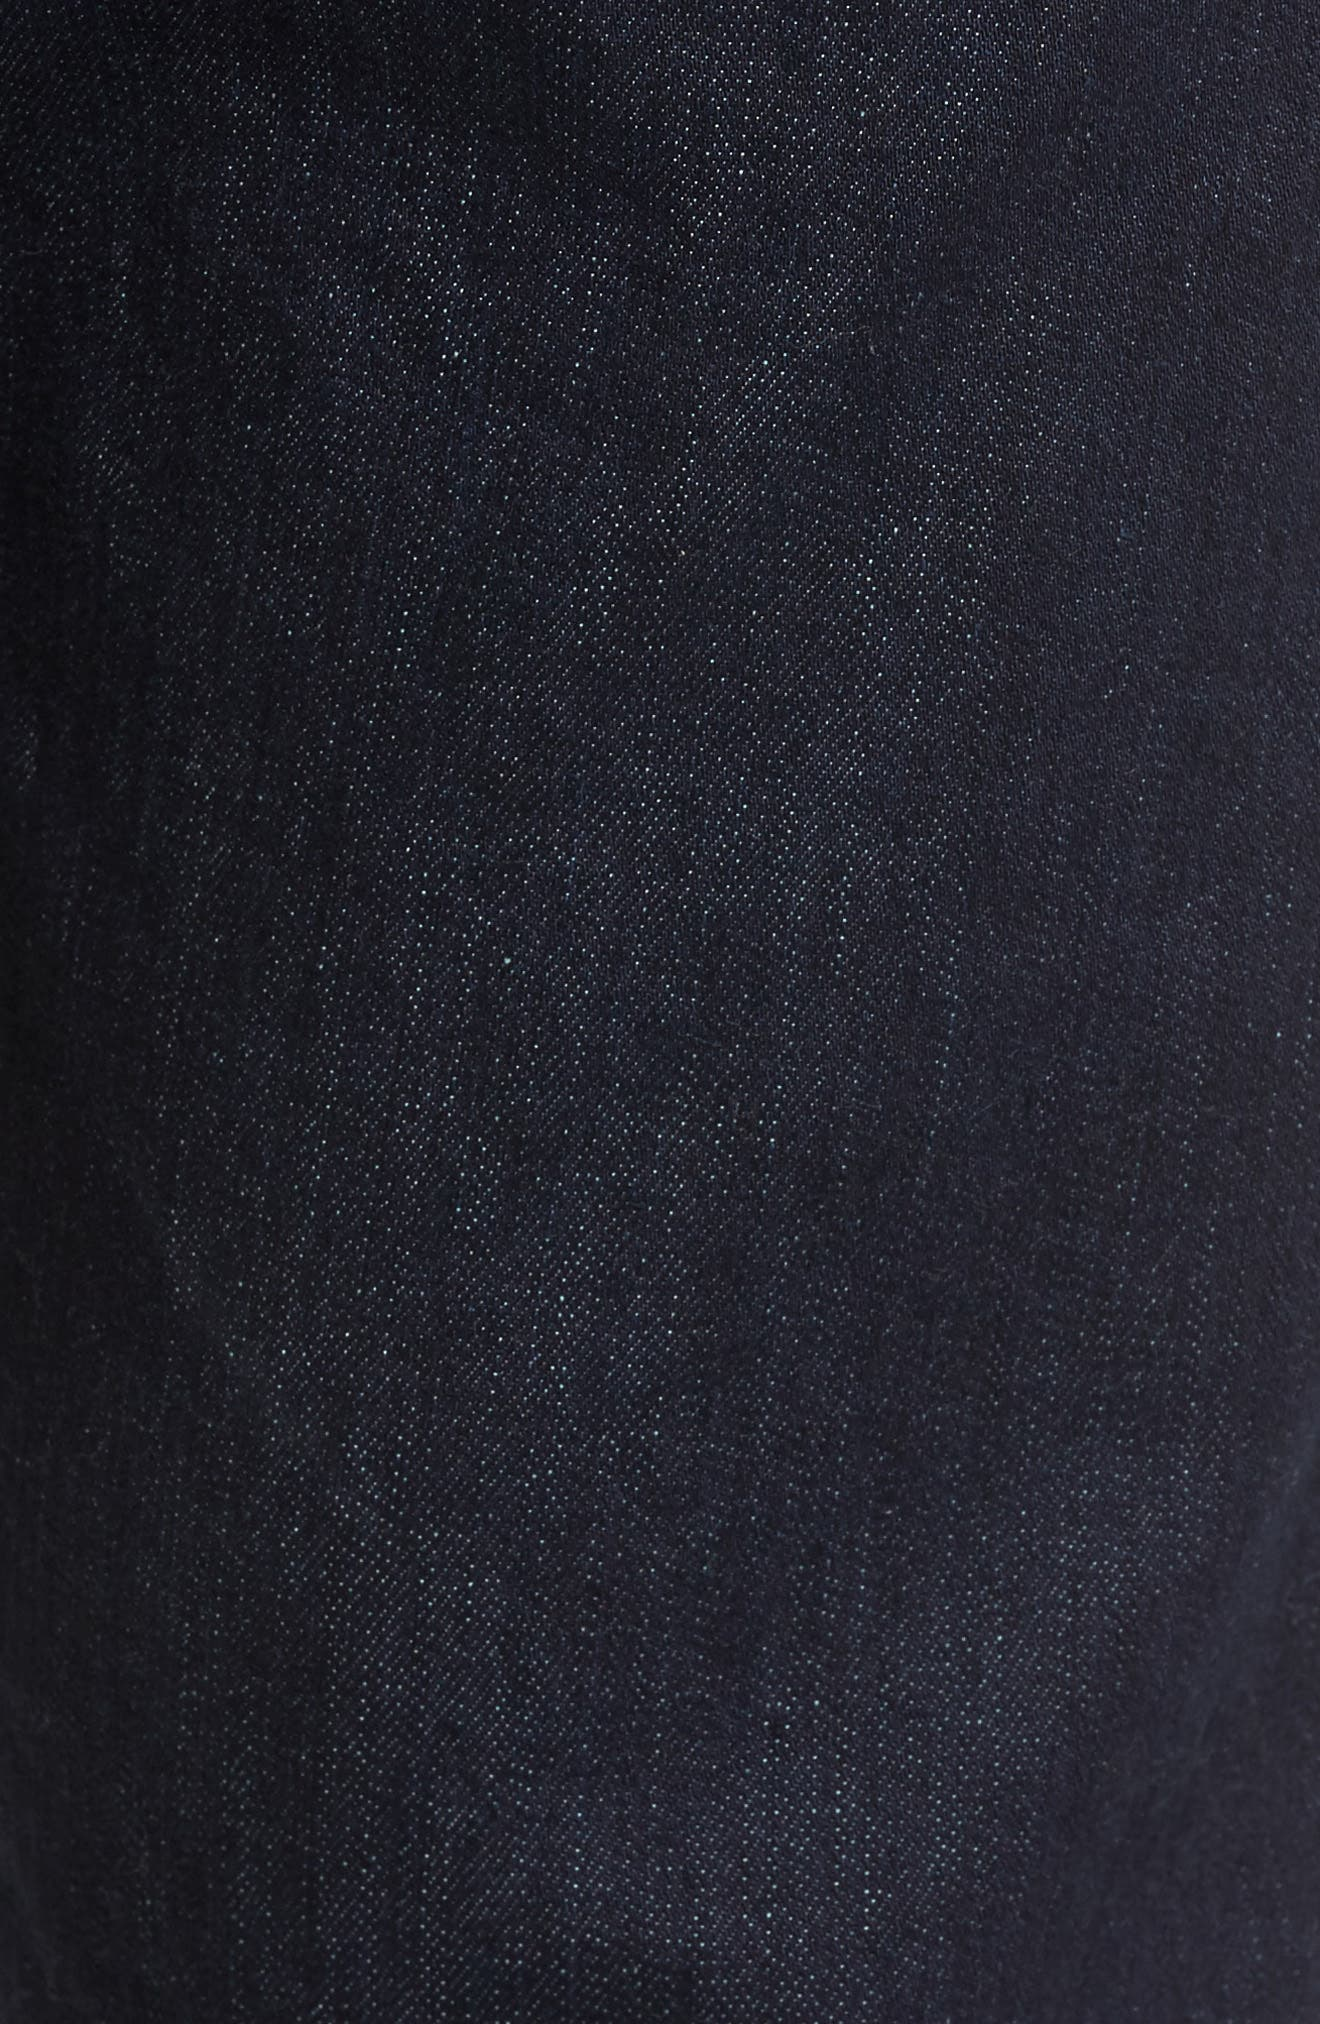 Ricky Relaxed Fit Jeans,                             Alternate thumbnail 5, color,                             2S Body Rinse